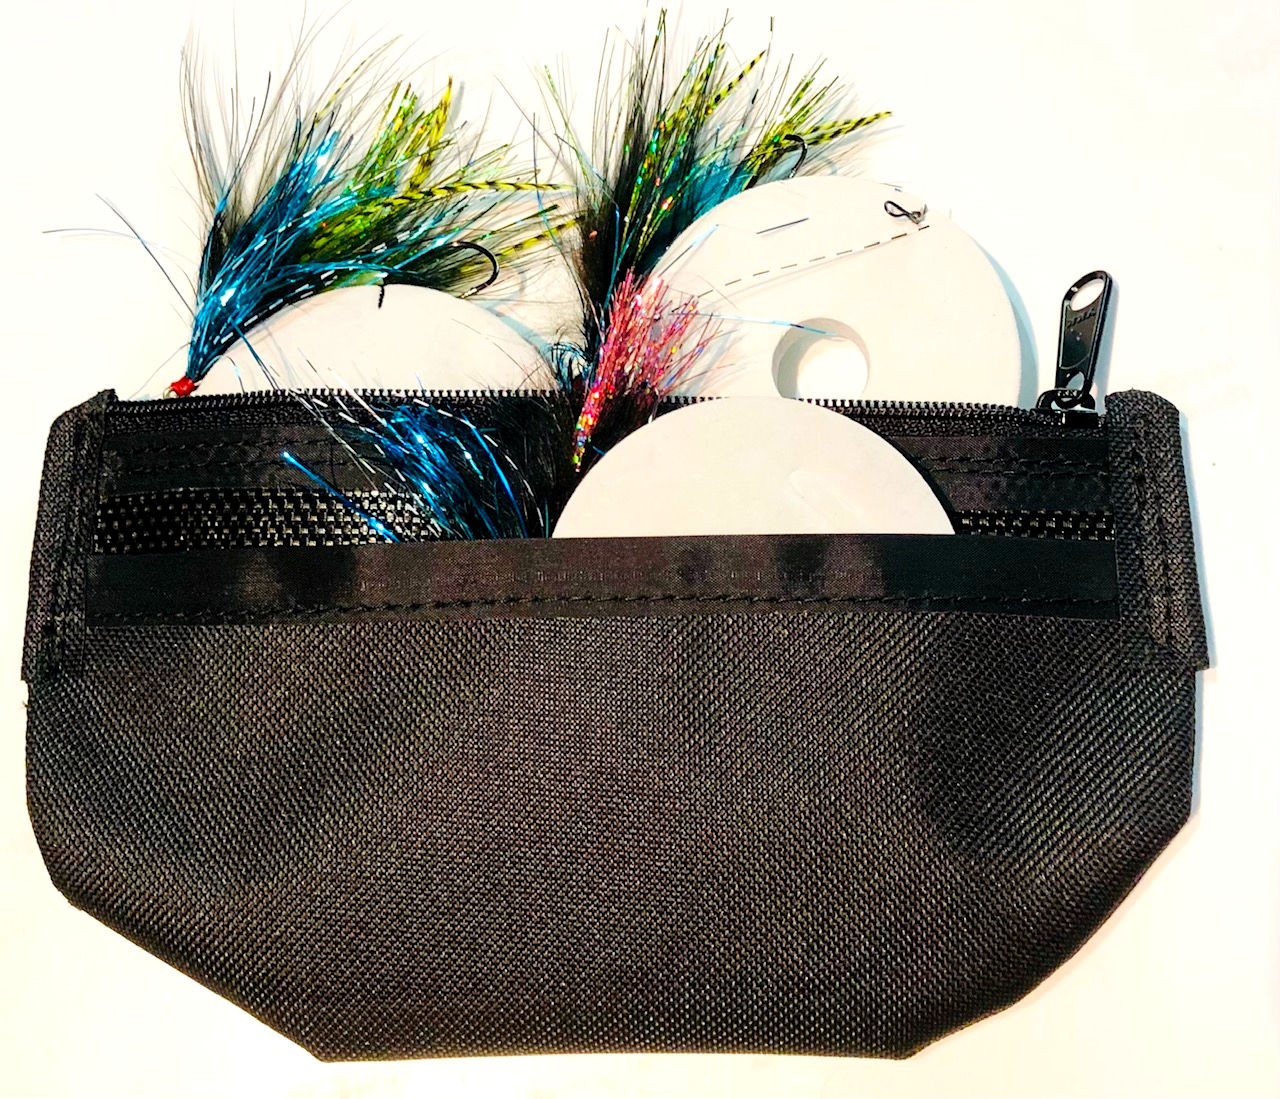 Tote with Flies and Discs